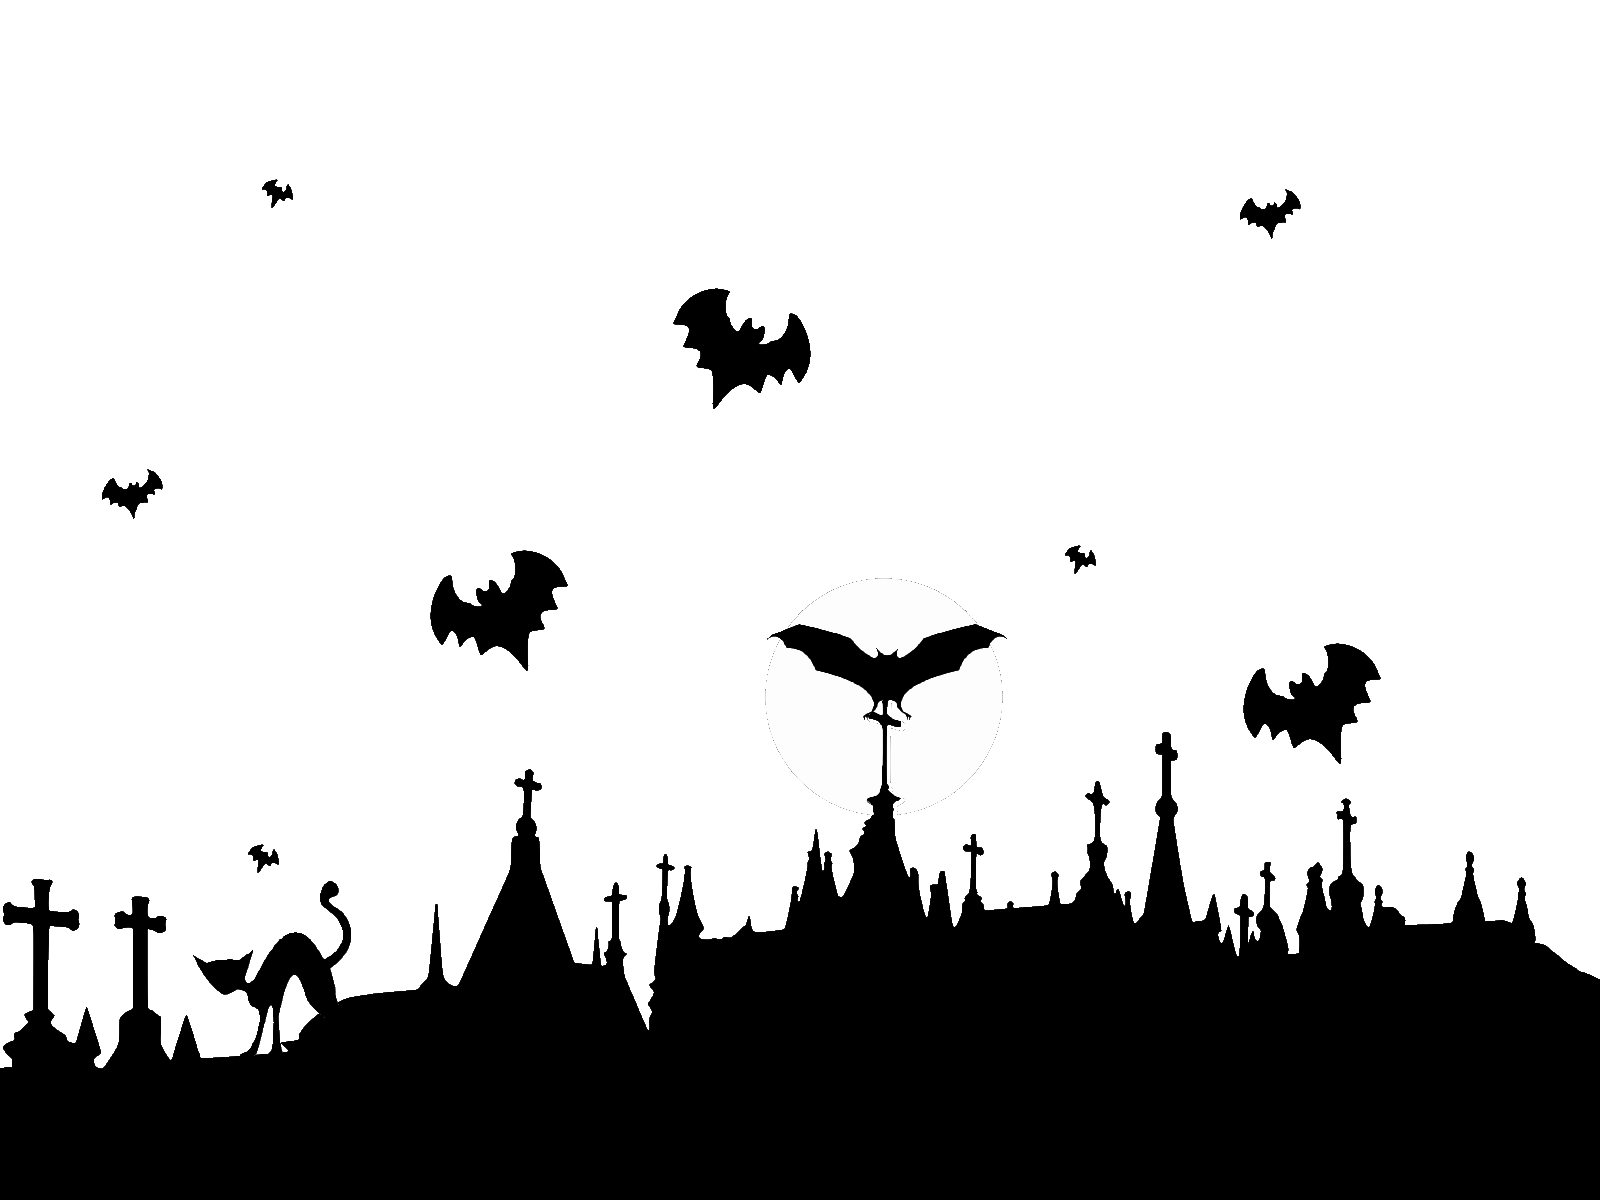 Halloween flying bats clipart graphic library Graveyard and Flying Bats transparent PNG - StickPNG graphic library